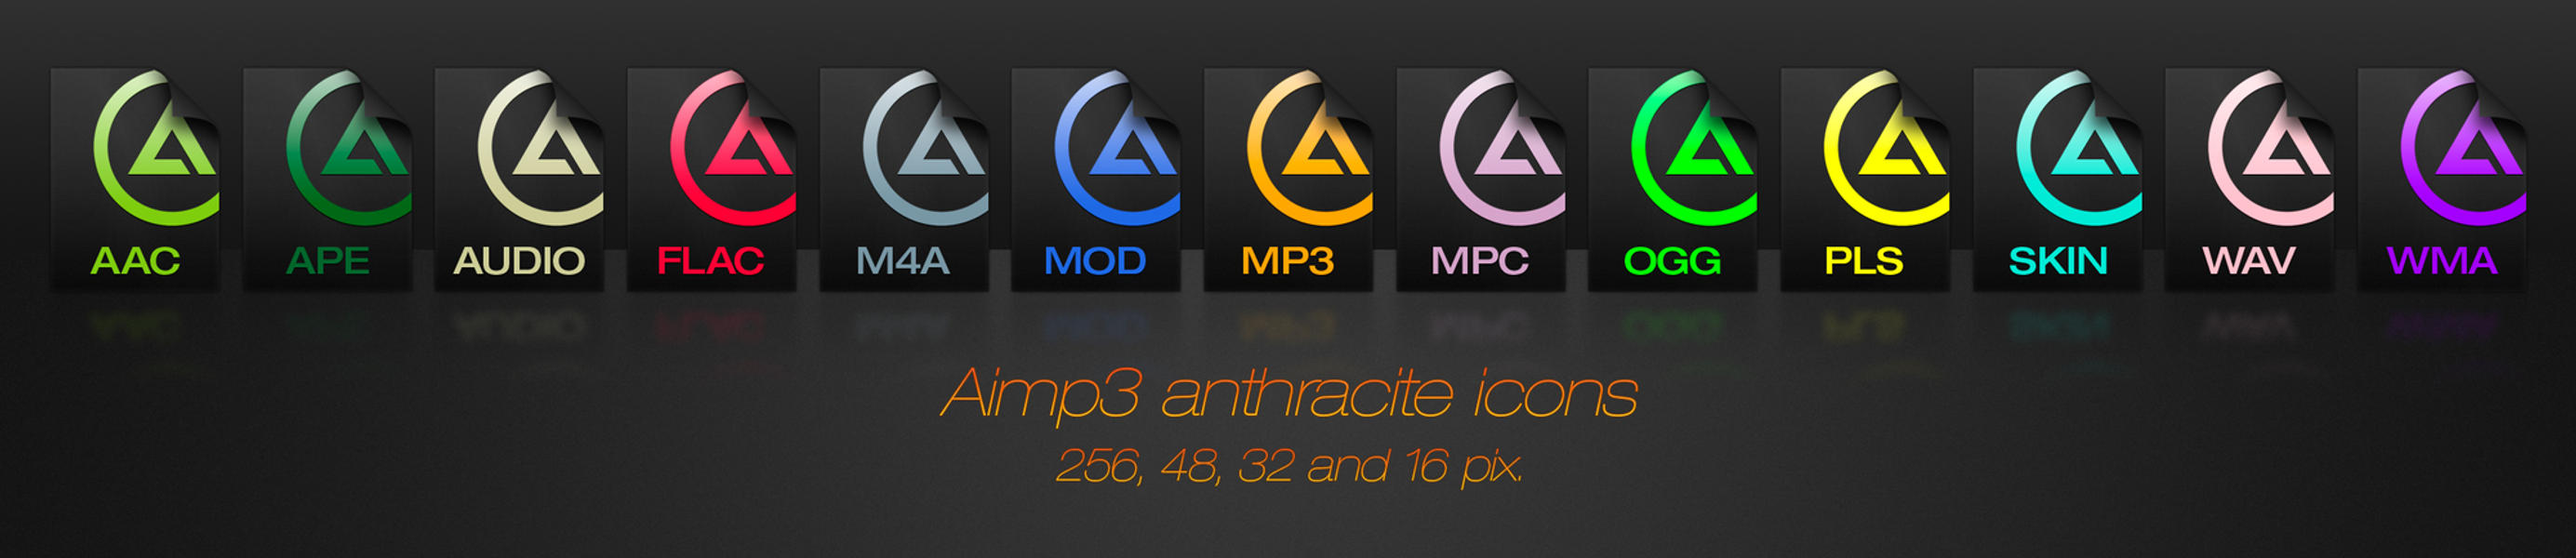 Aimp 3 anthracite icons by aablab